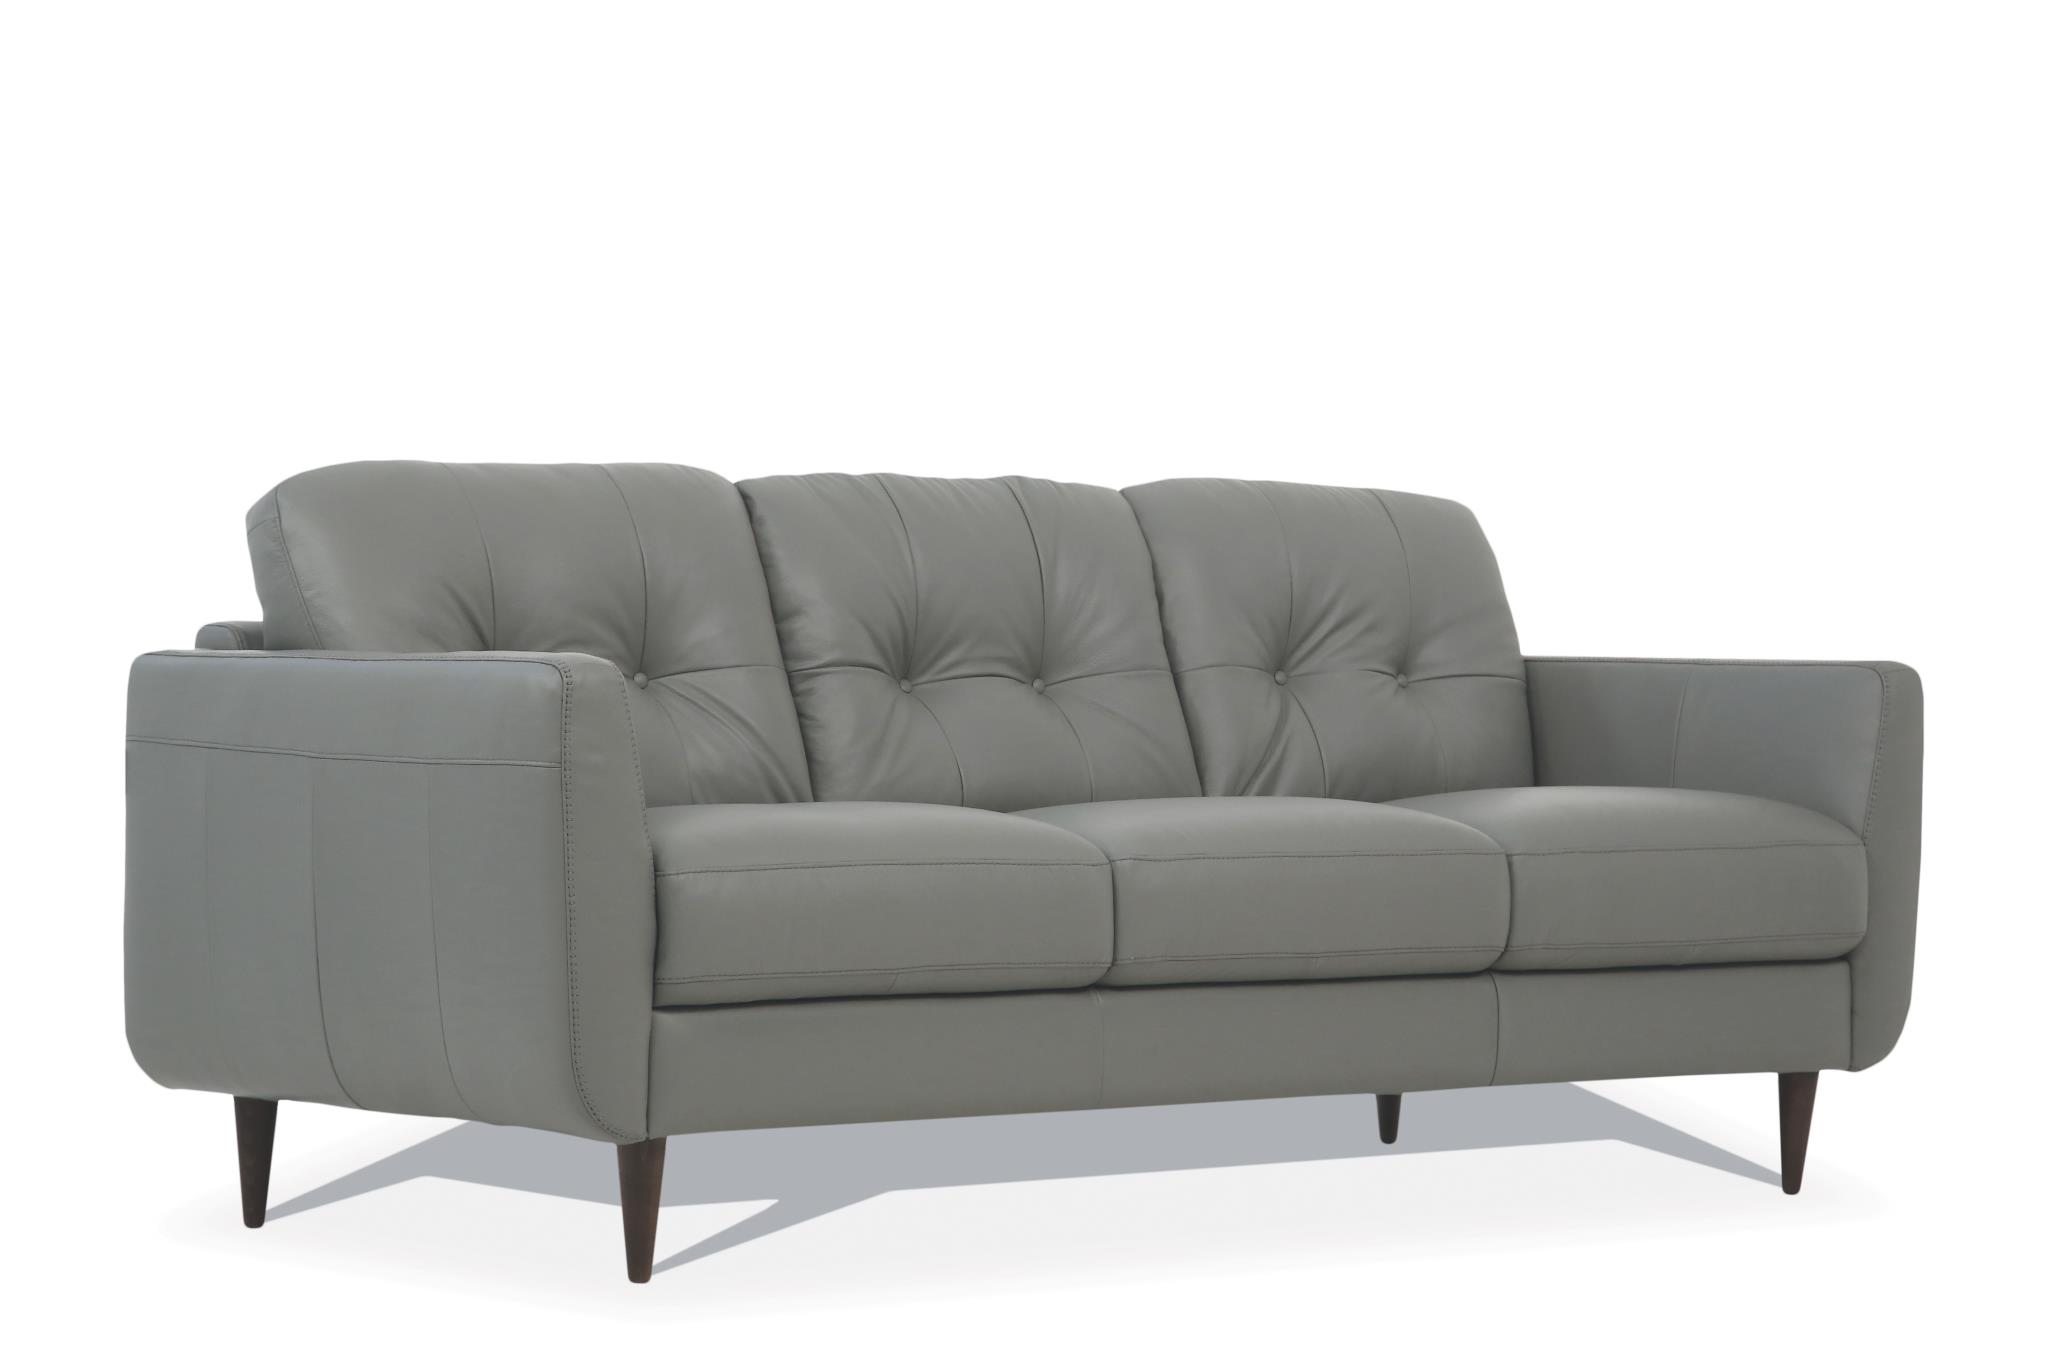 Pesto Green Sofa